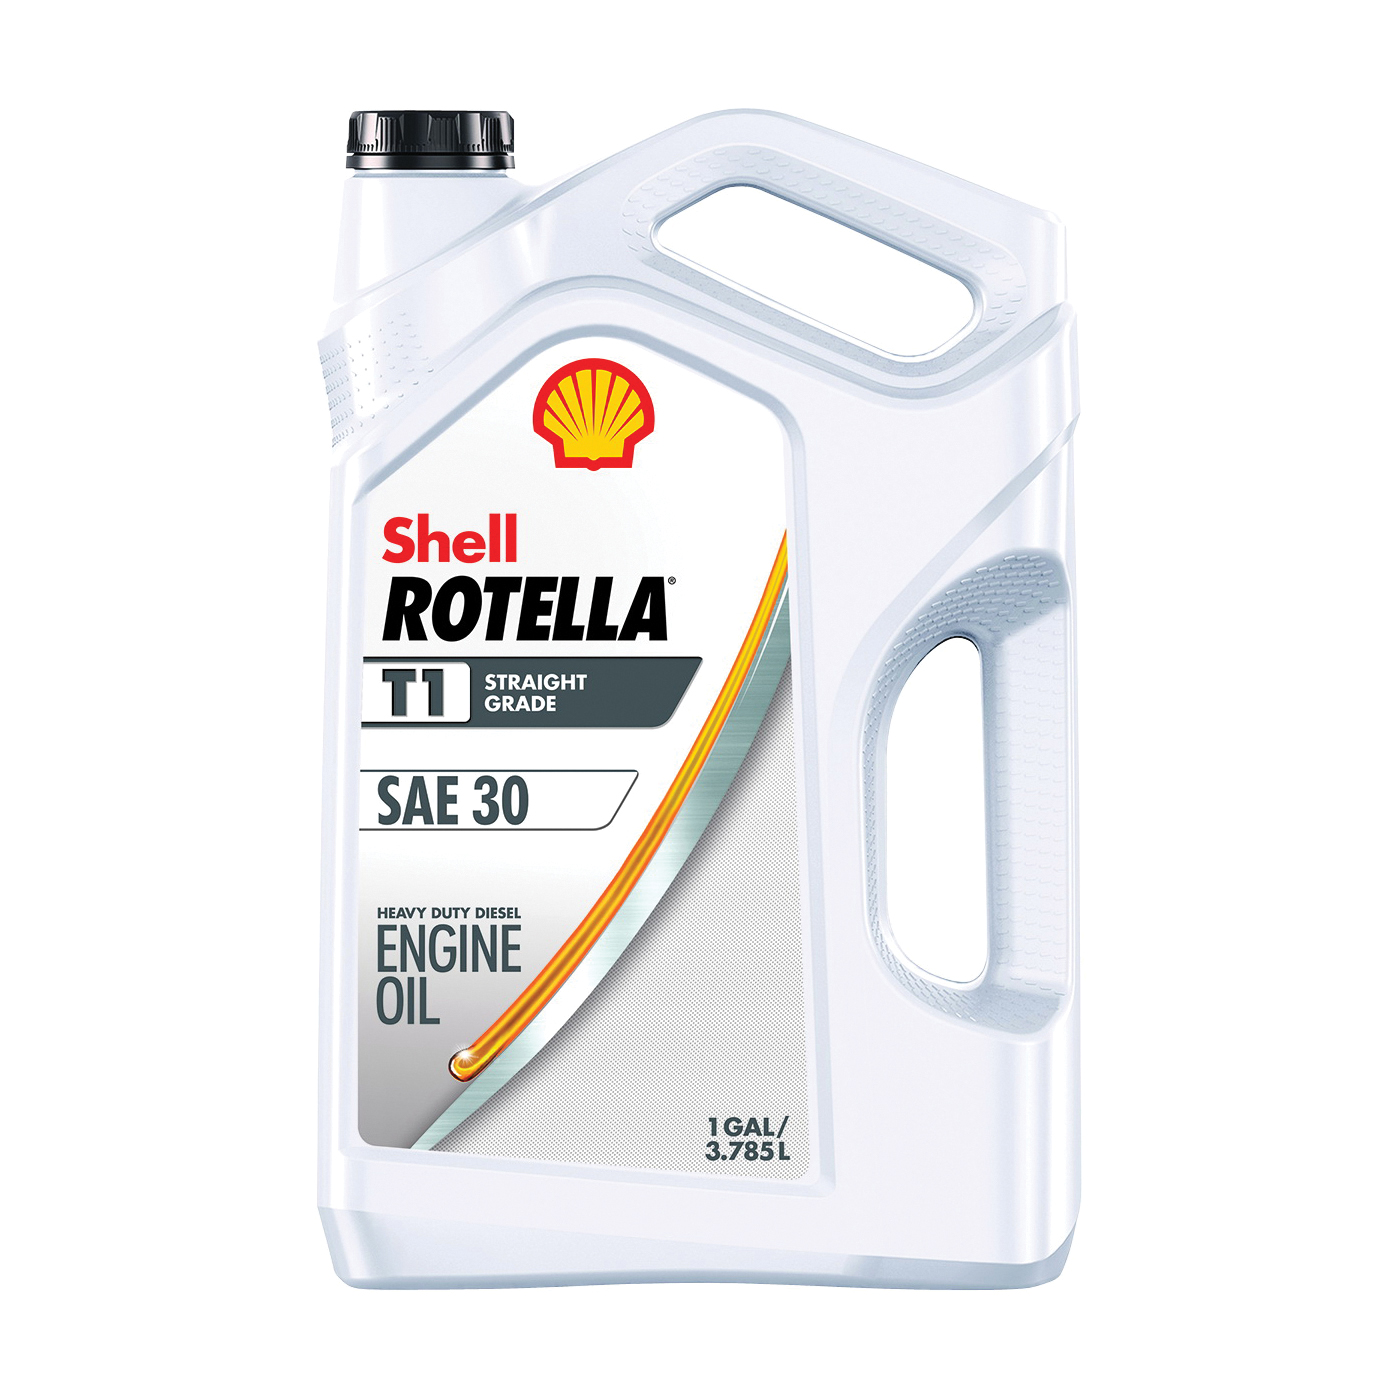 Picture of Shell Rotella 550045380 Engine Oil, 30, 1 gal Package